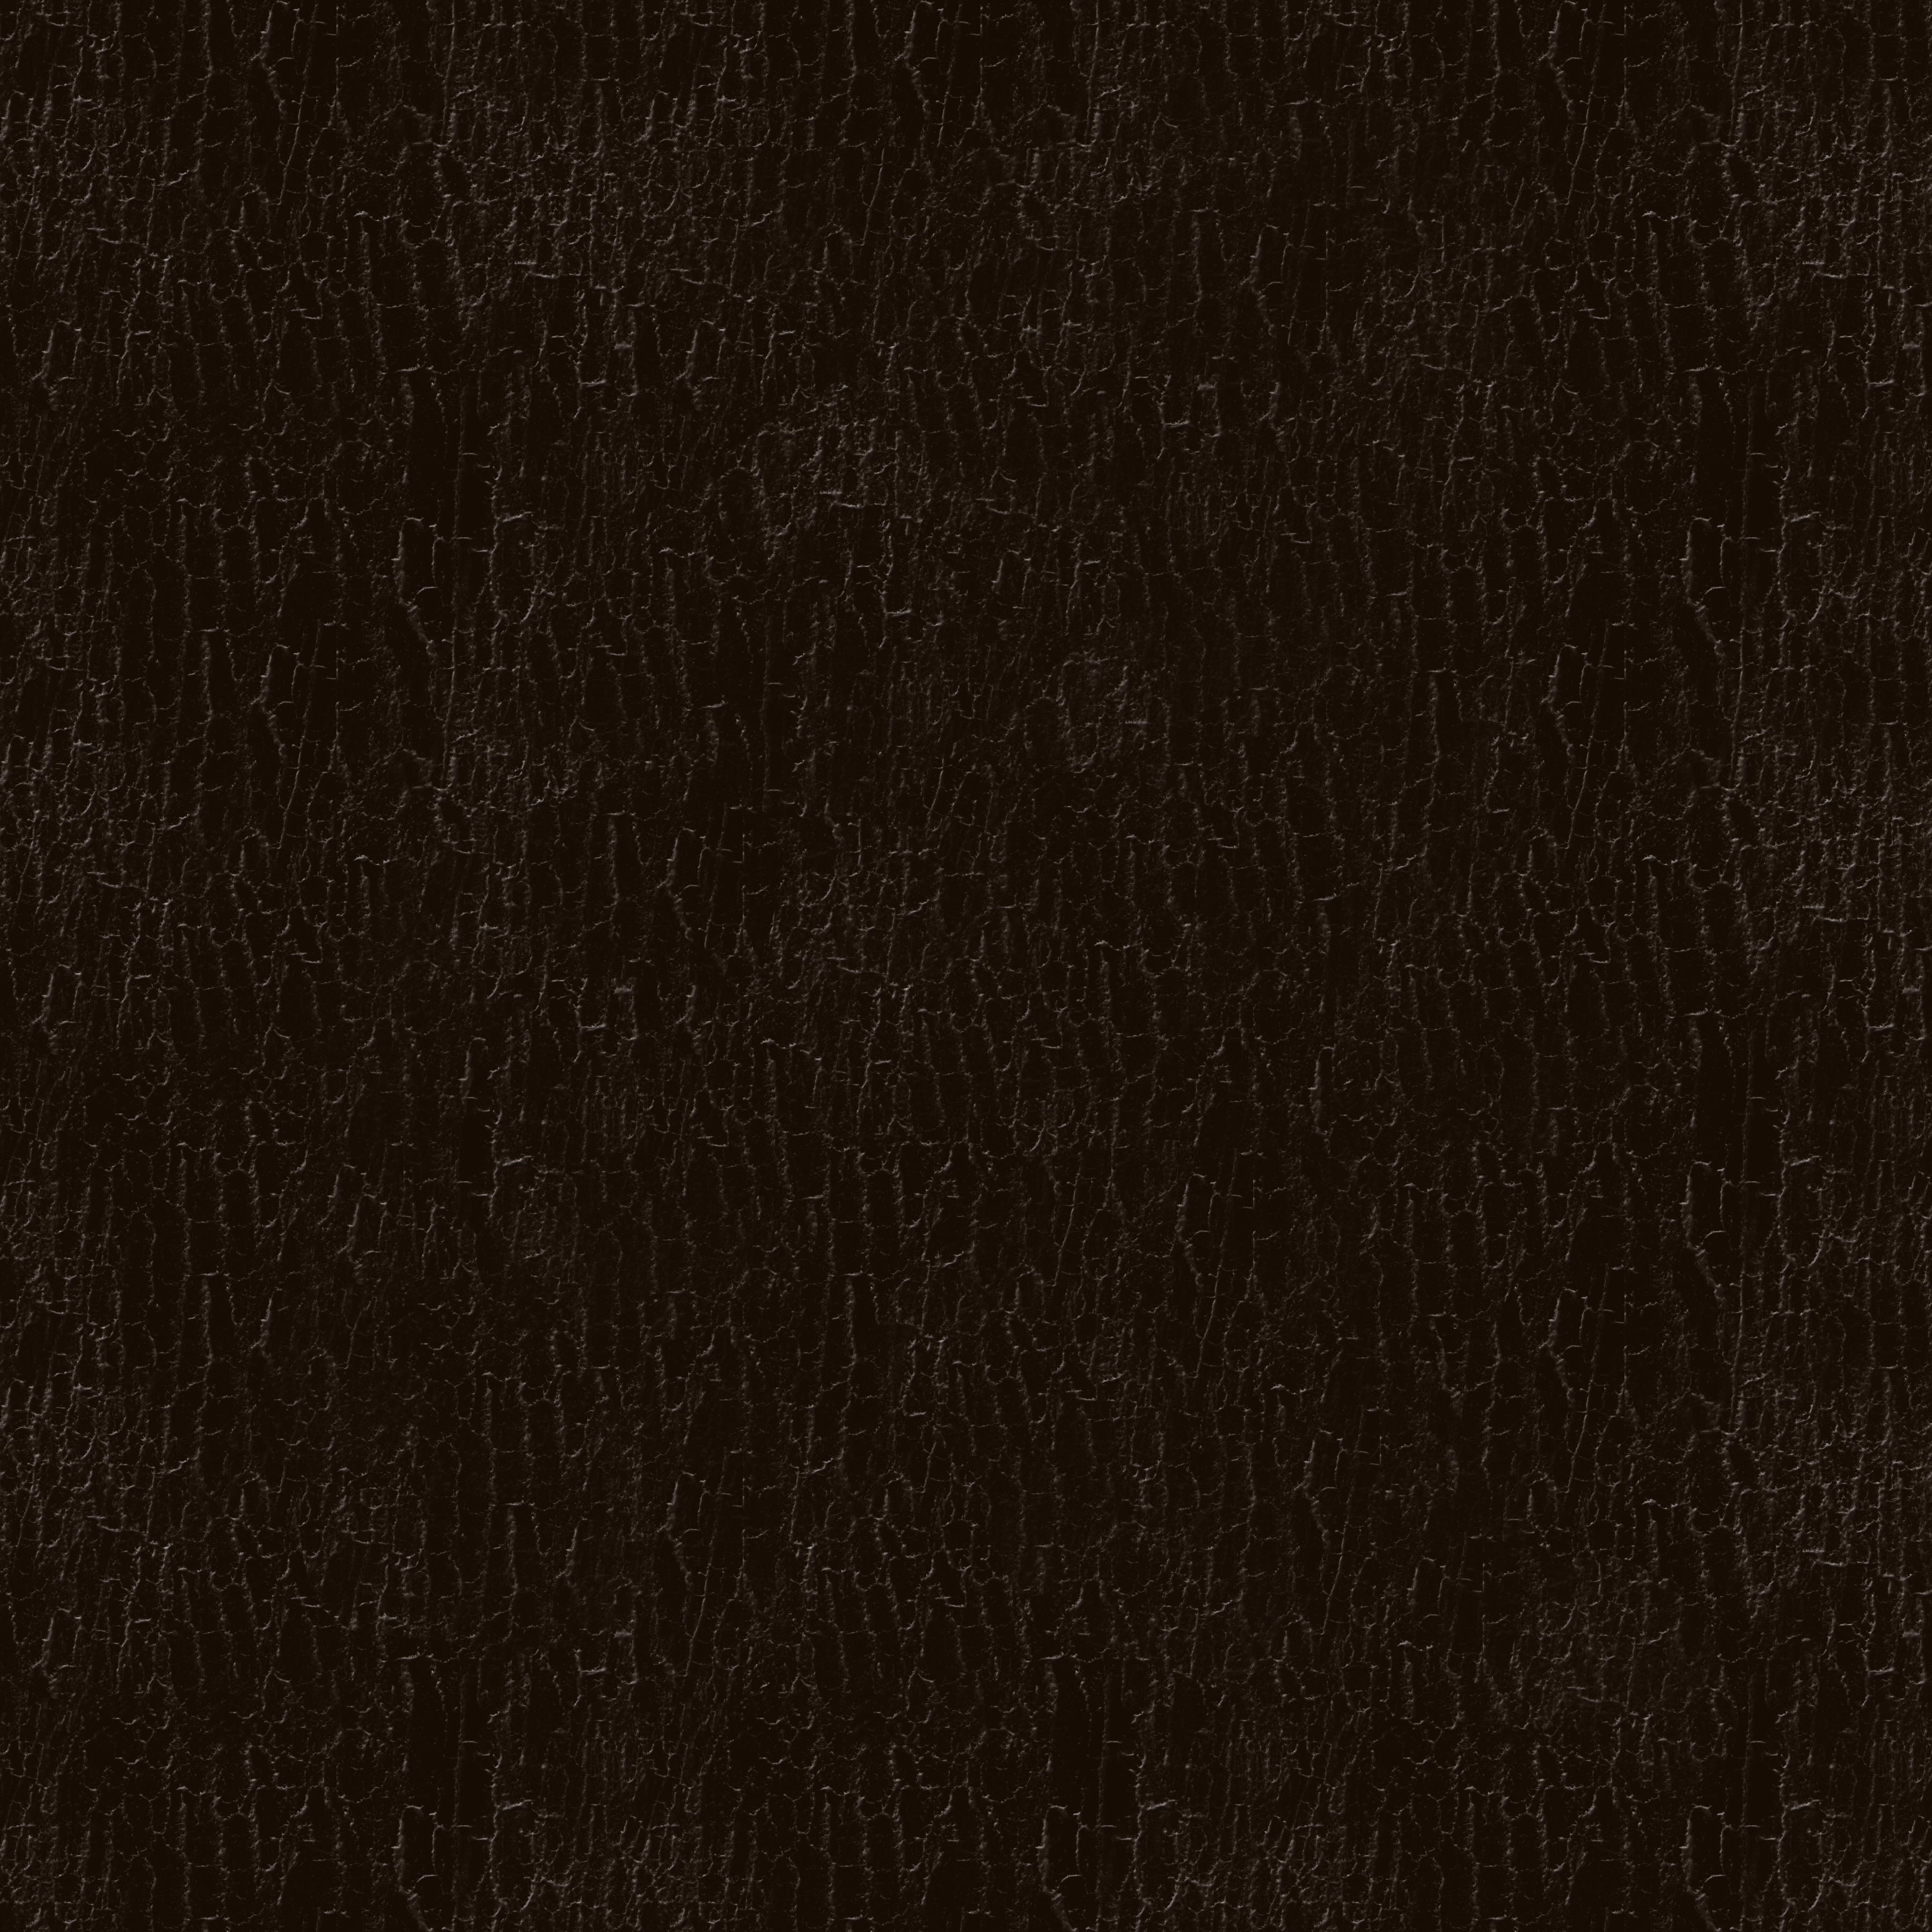 Real Leather Texture SEAMLESS 2 by koncaliev